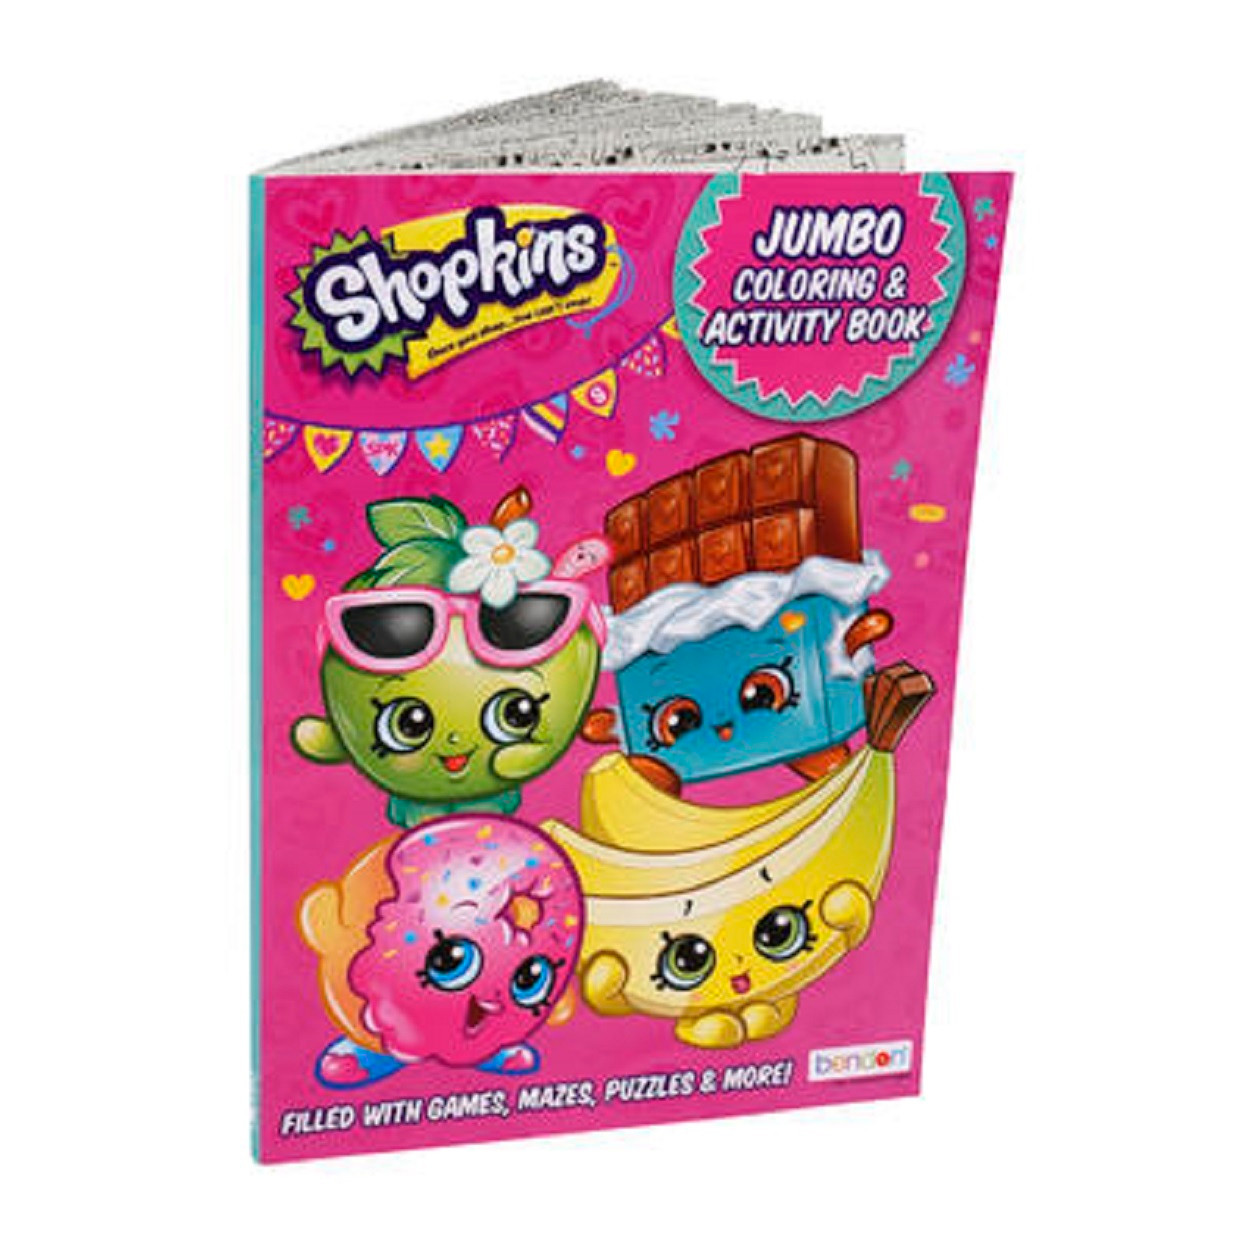 Coloring Book - Shopkins - Party Favors - 96 Pages - All Pink